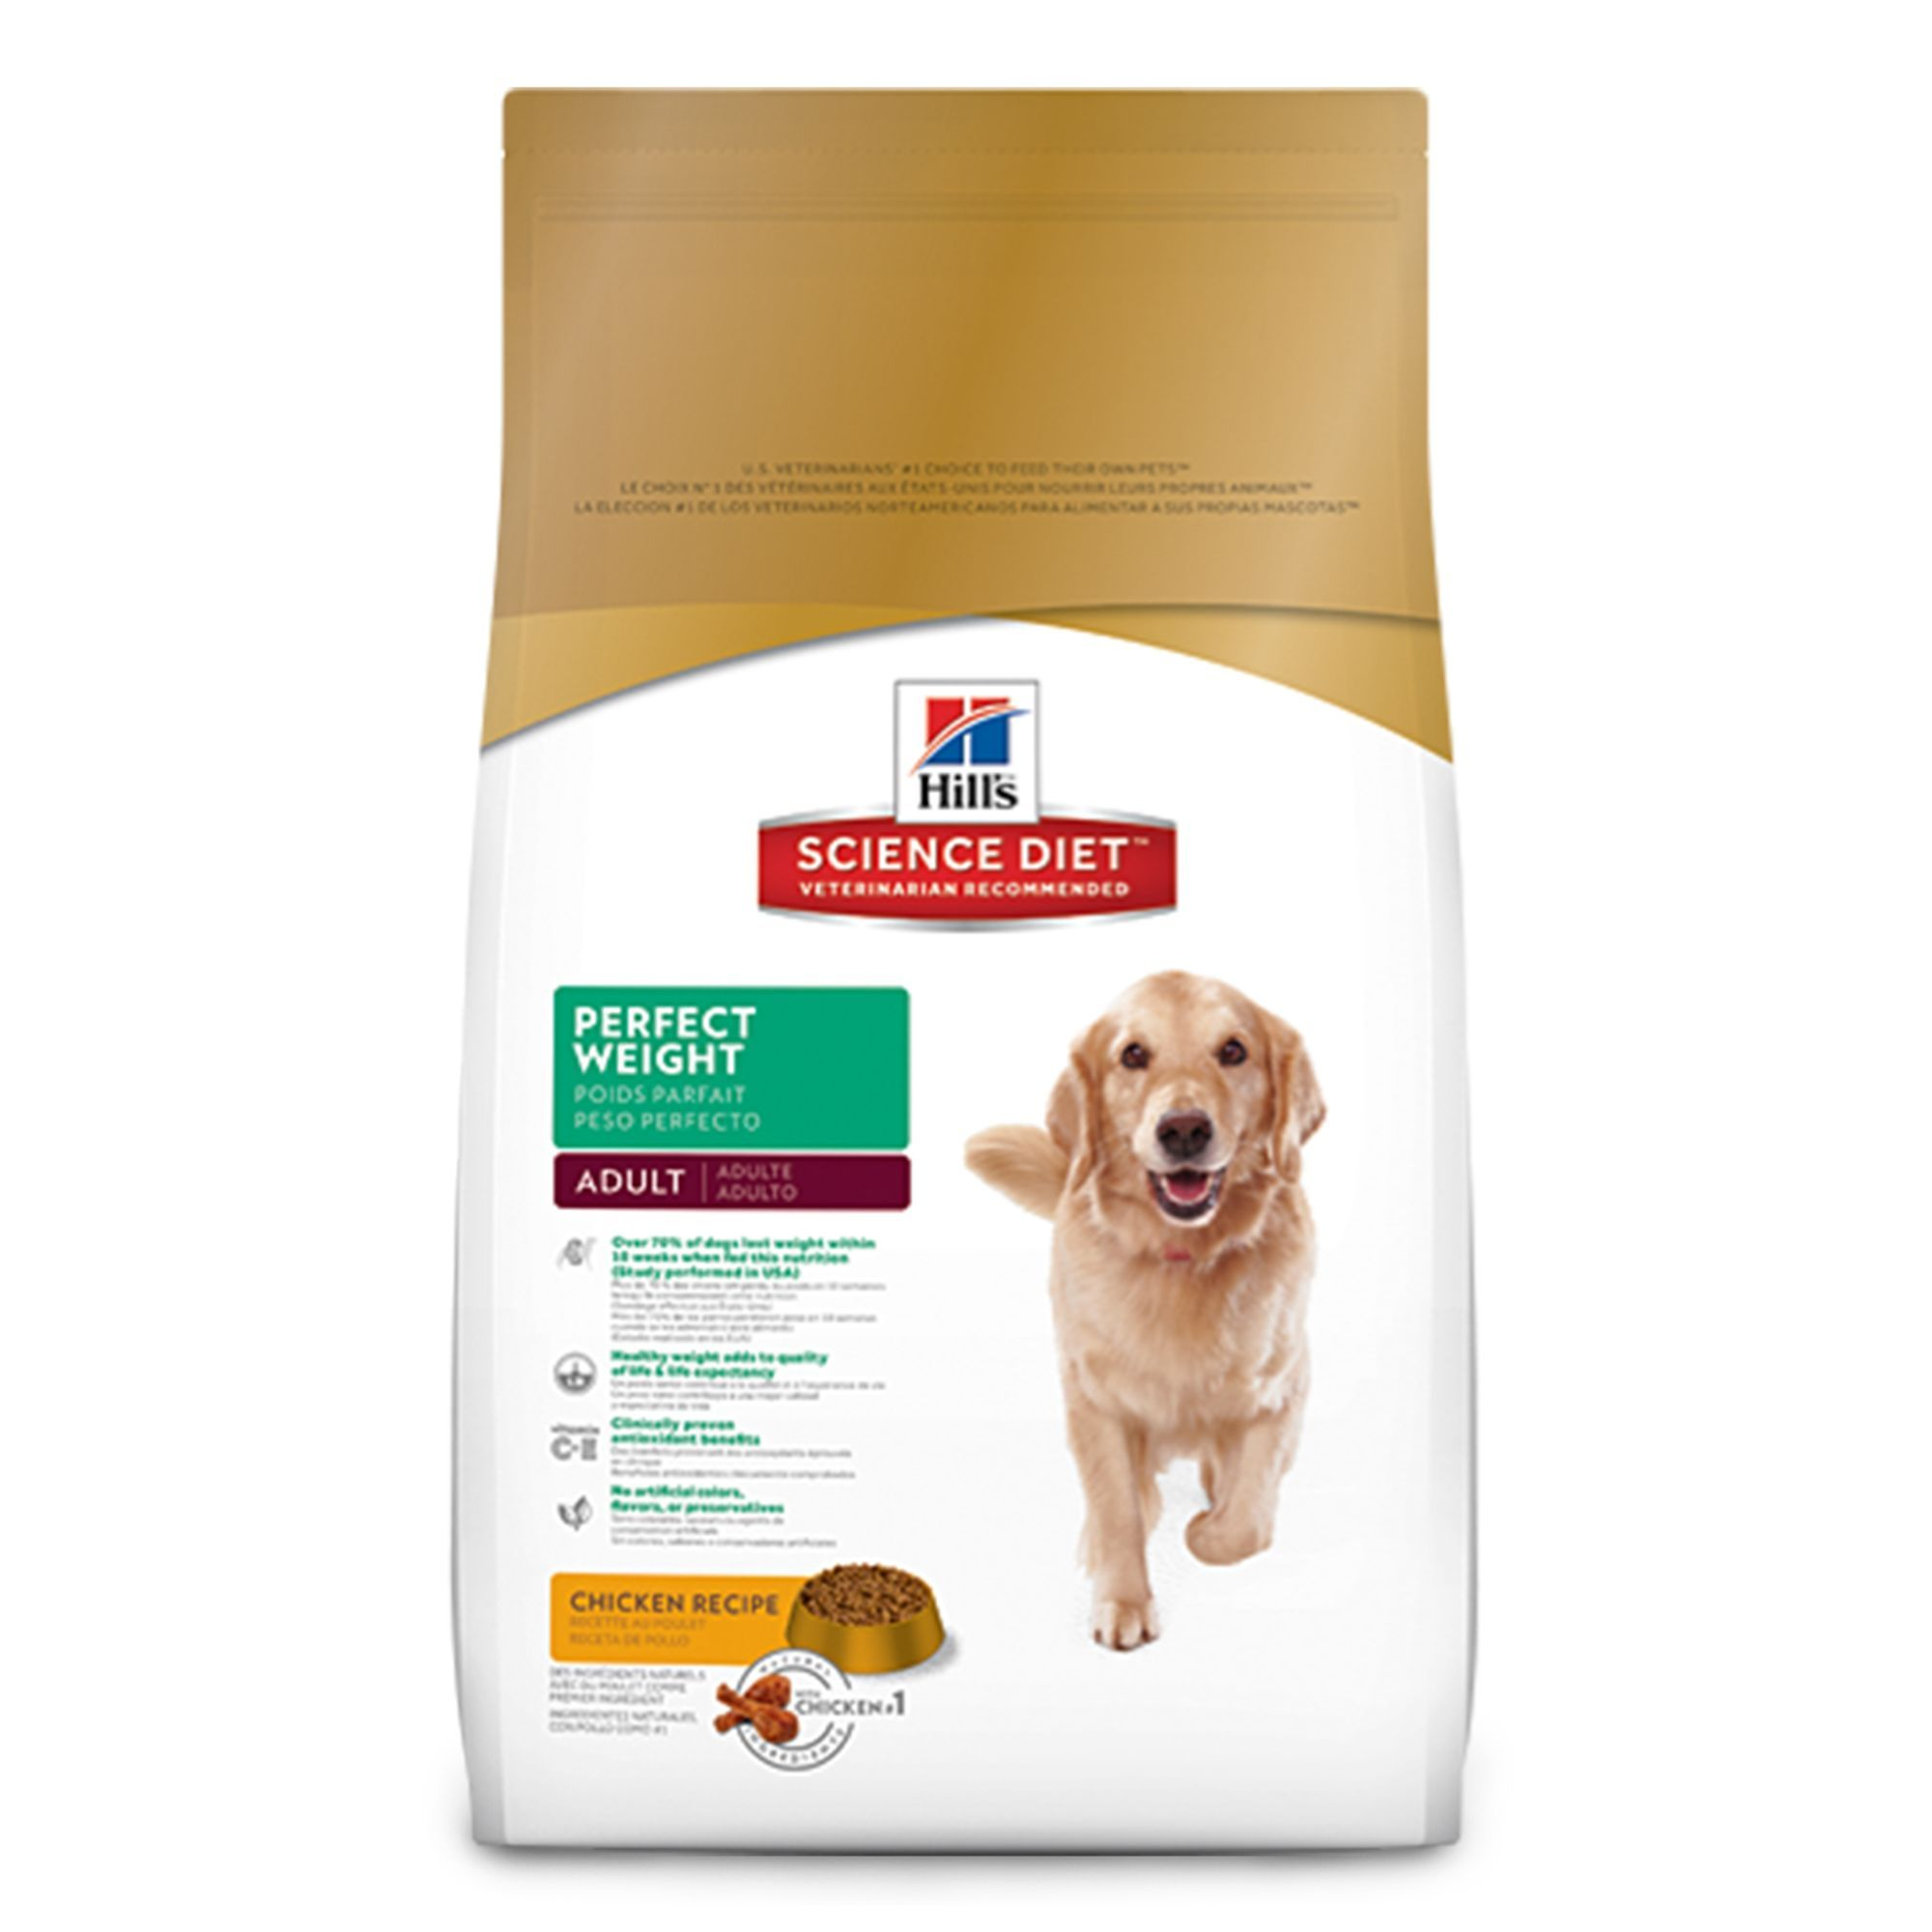 Hills Science Diet Perfect Weight Adult Dog Food Chicken